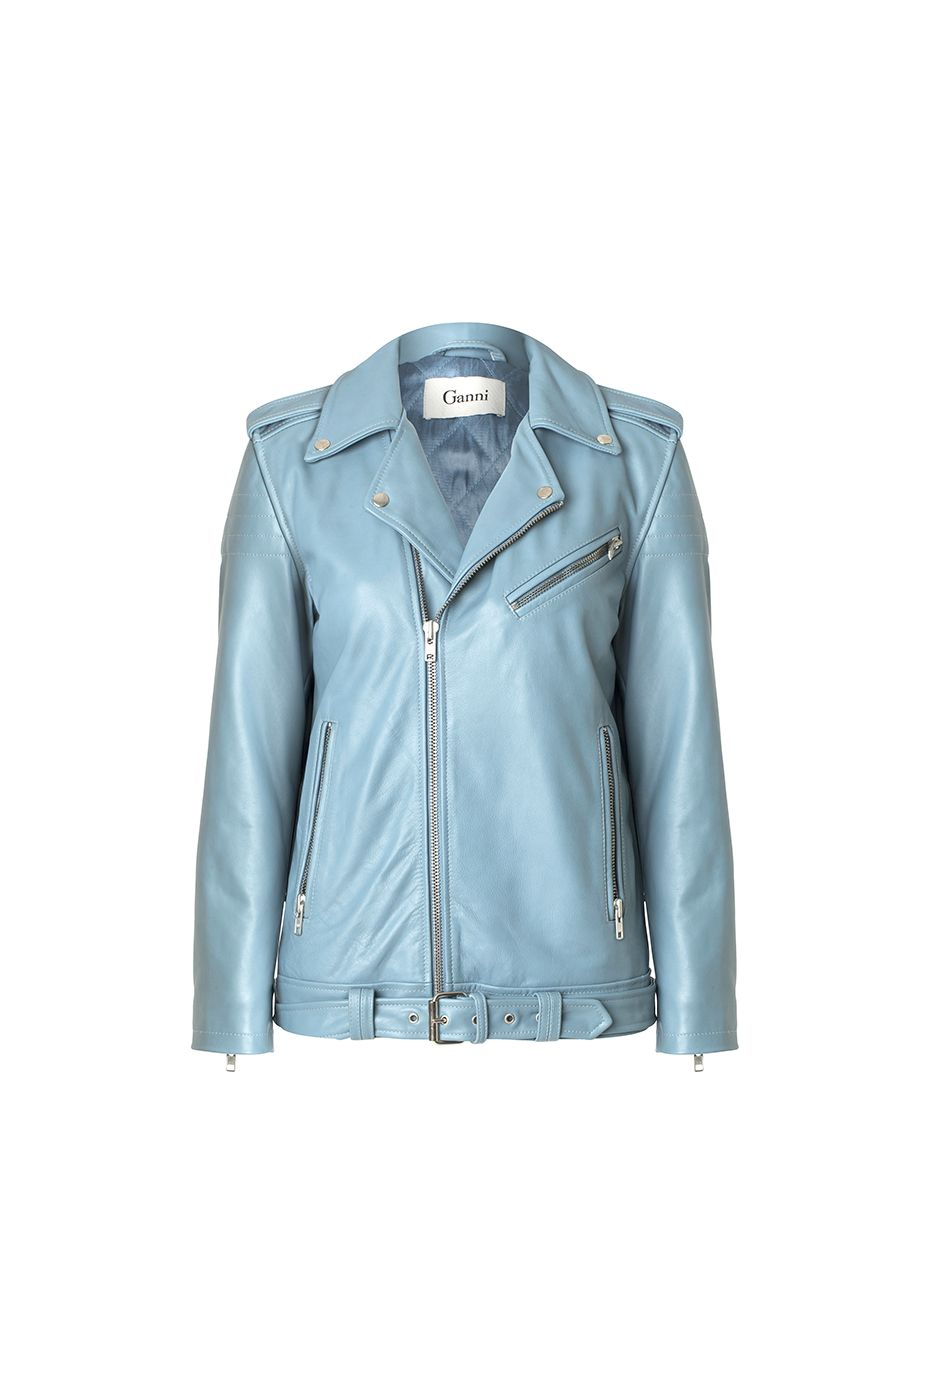 Coats Jackets Jacket Shopping Outfit Clothes Jackets [ 1395 x 930 Pixel ]